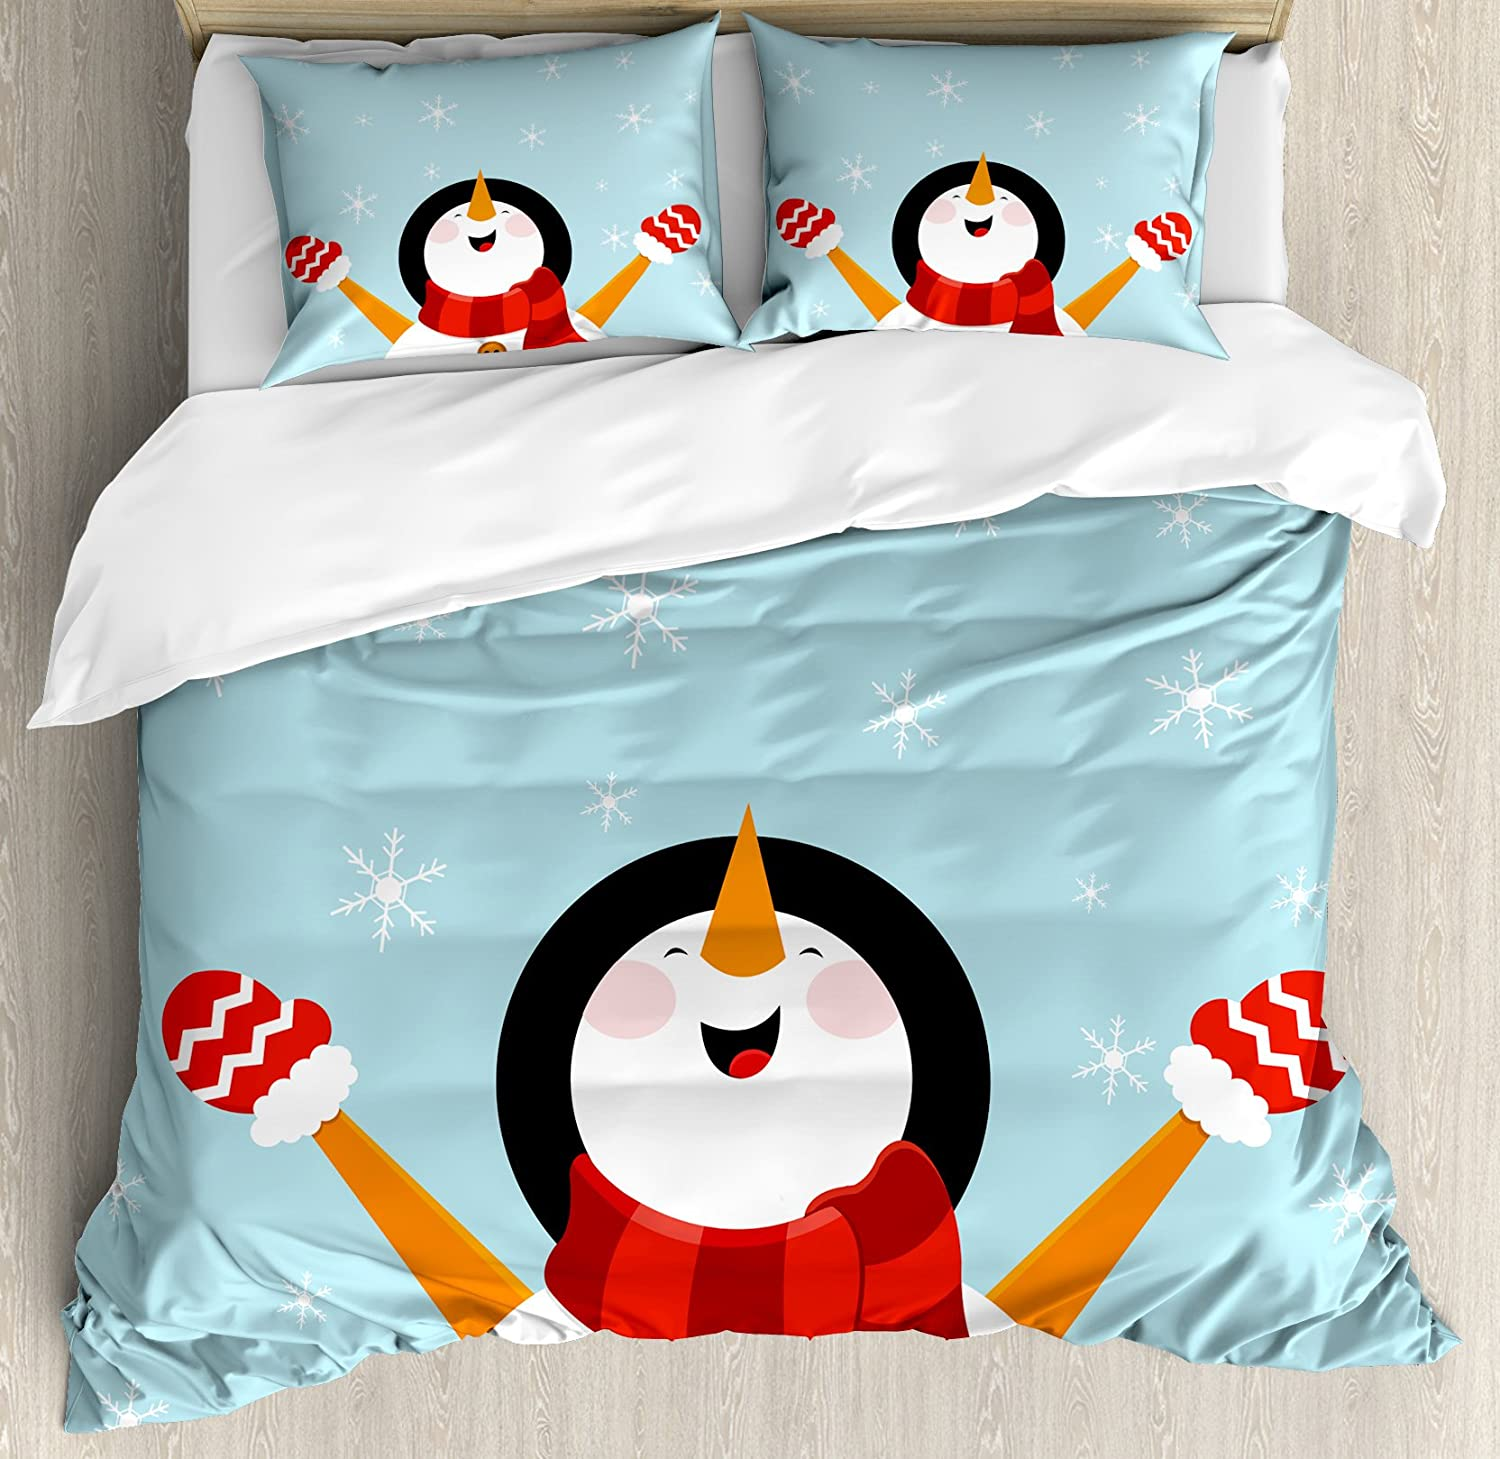 Ambesonne Christmas Duvet Cover Set Smiling with Happy New item Snowman Max 63% OFF